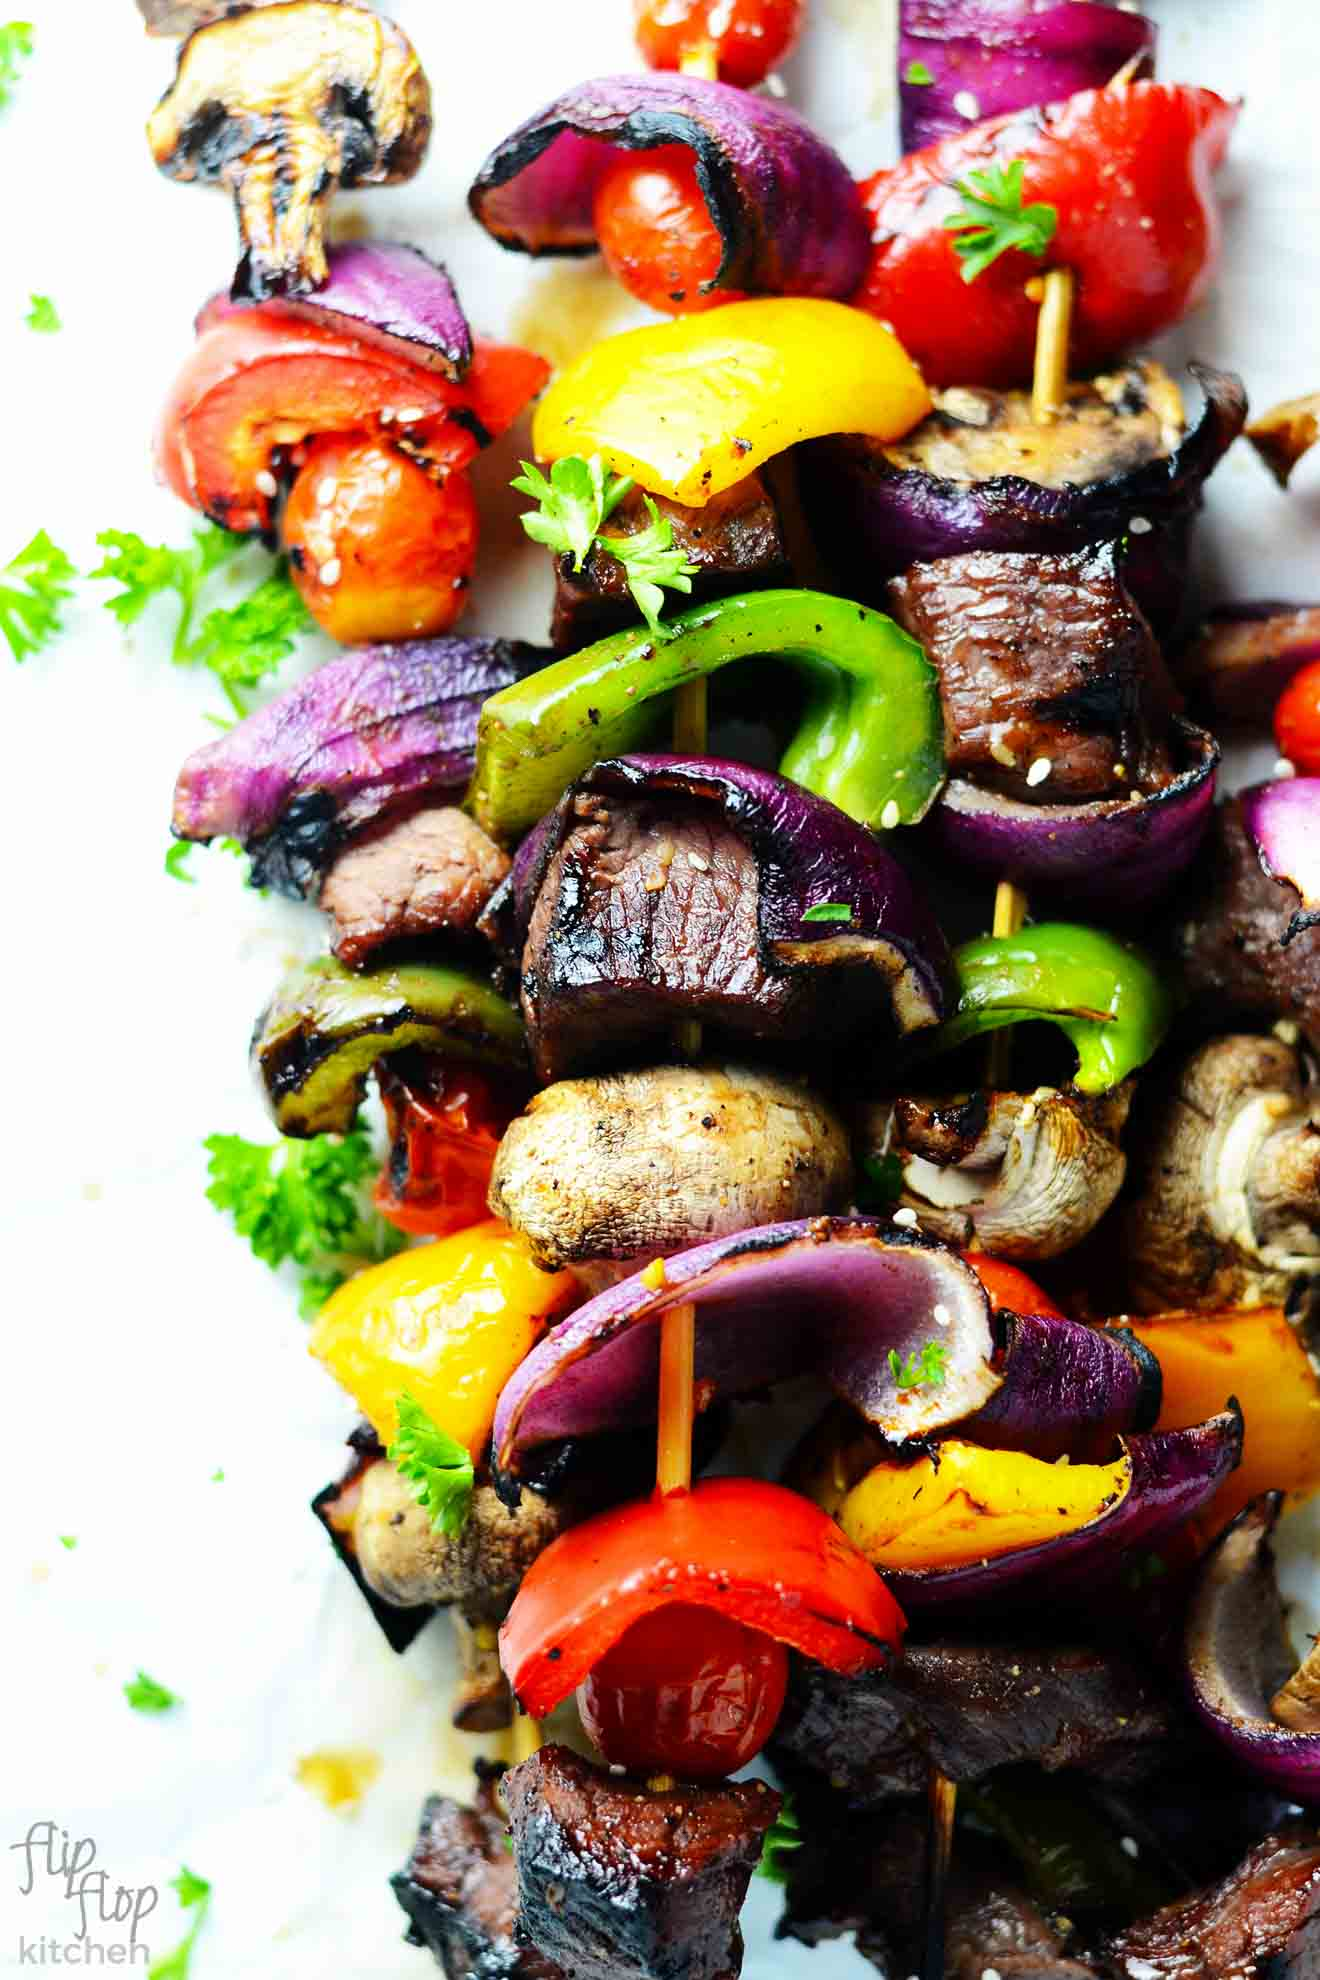 Perfectly Grilled Shish Kabobs